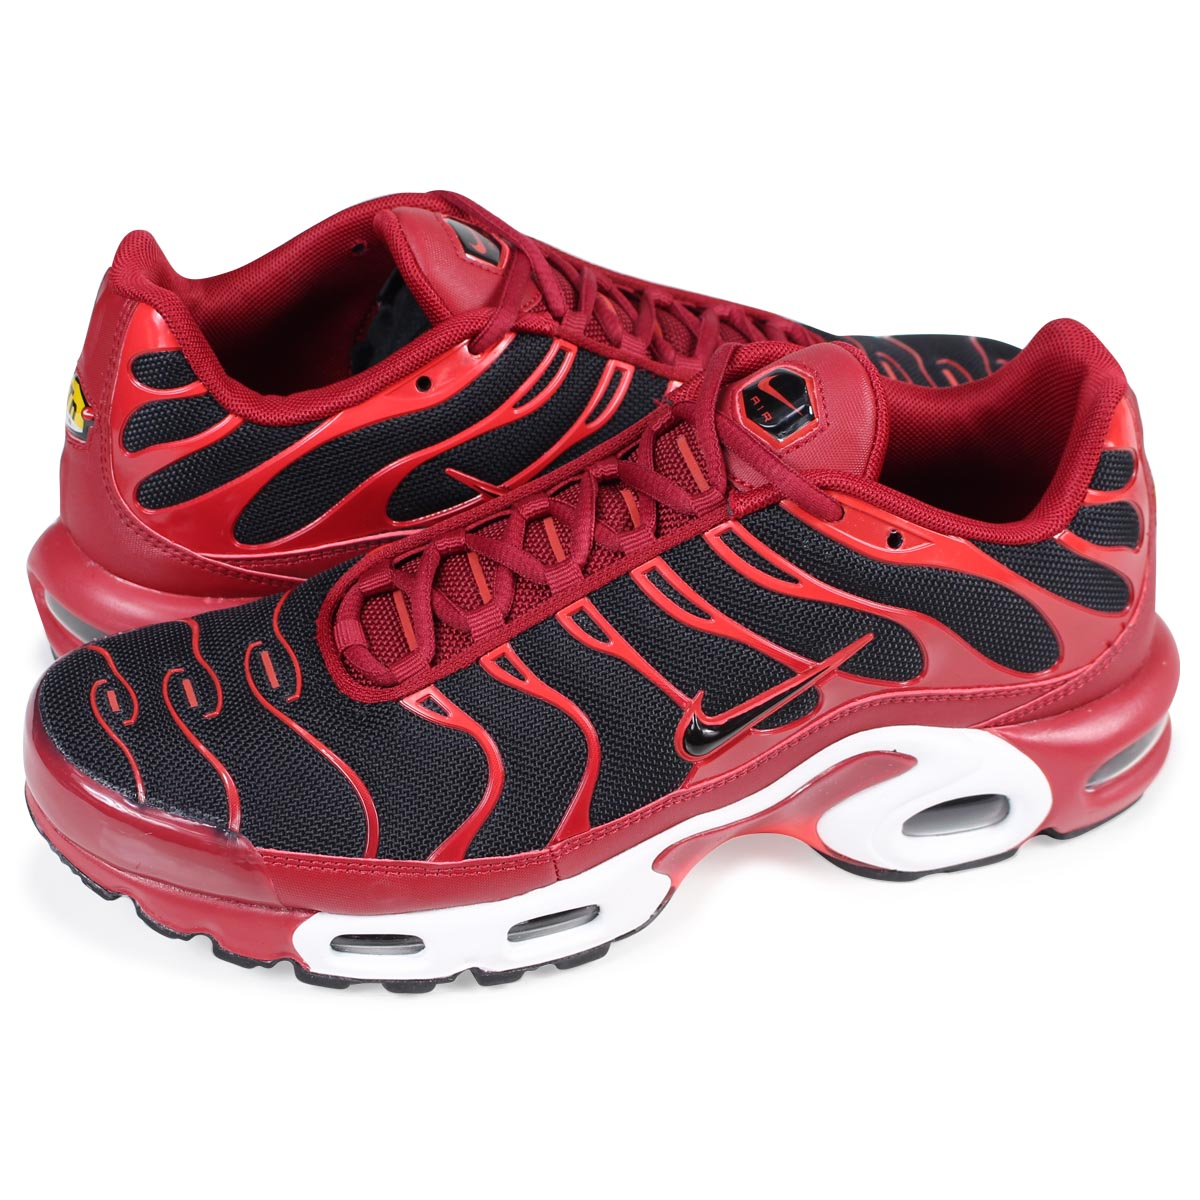 best website fea8c b691d NIKE AIR MAX PLUS Kie Ney AMAX plus sneakers 852,630-601 men's red [1/20  Shinnyu load]